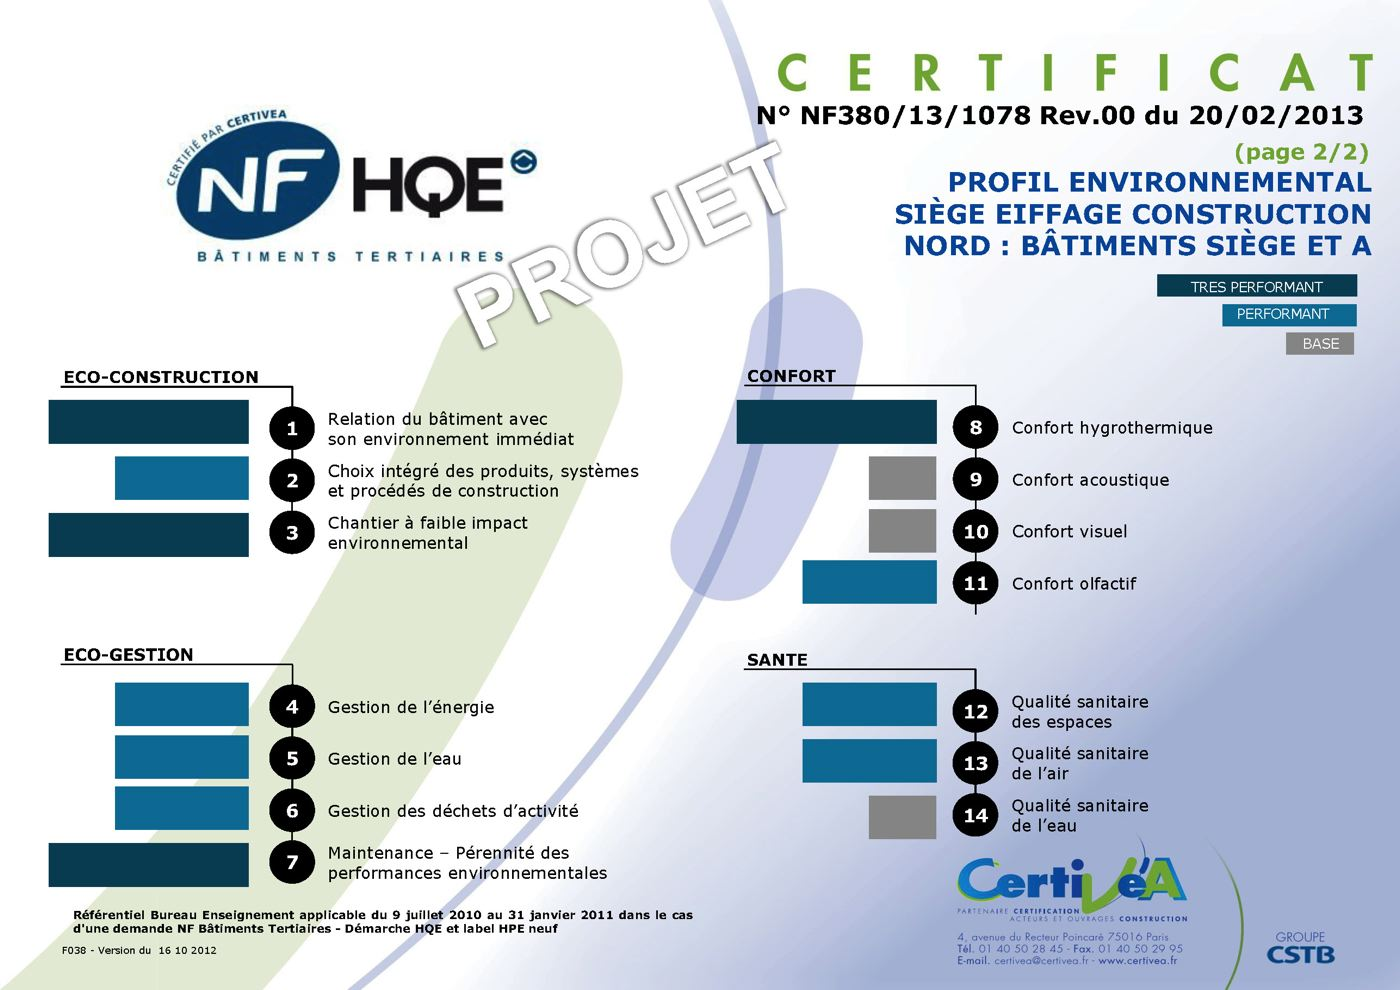 Eiffage siege nord_Certificat NF BT HQE__ PC_Page_2.jpg